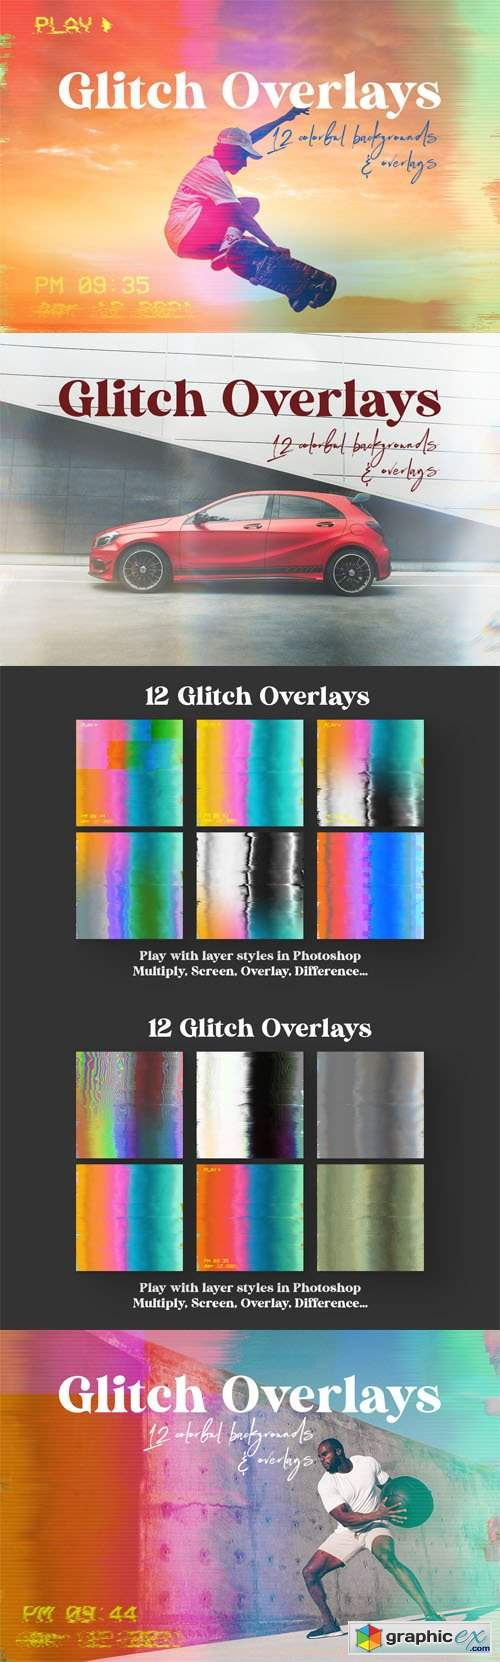 Glitch Overlays - 12 Colorful Backgrounds & Overlays